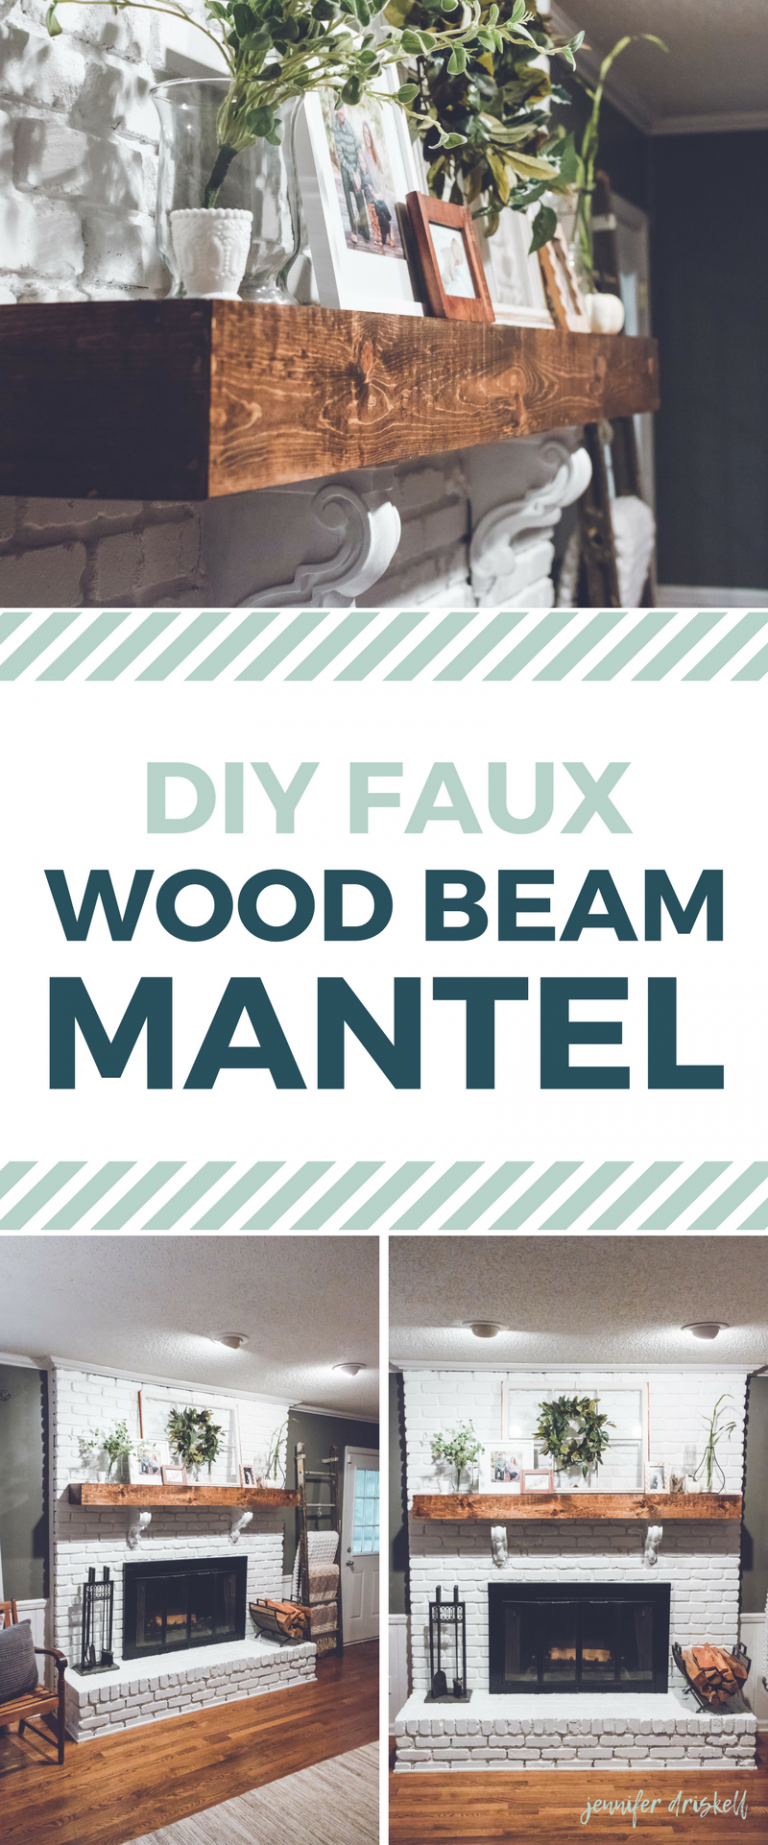 DIY Faux Wood Beam Mantle Farmhousestyle white brick fireplace